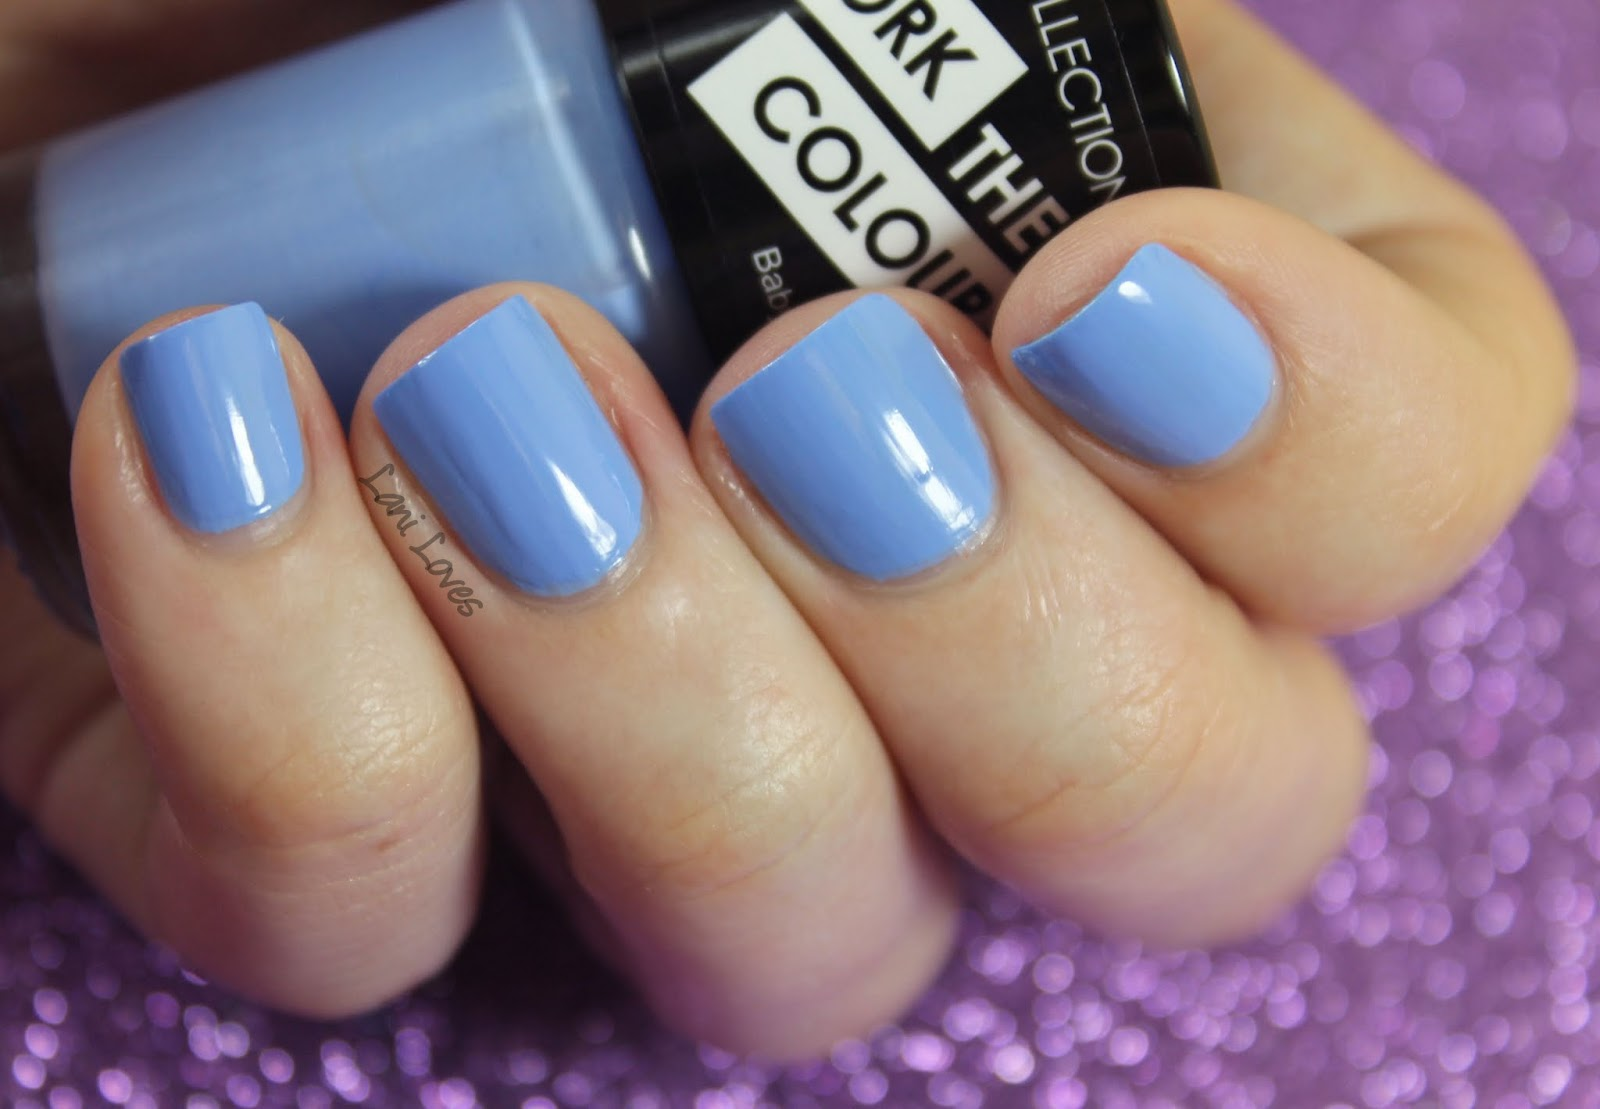 collection work the colour nail polish swatches & review - new